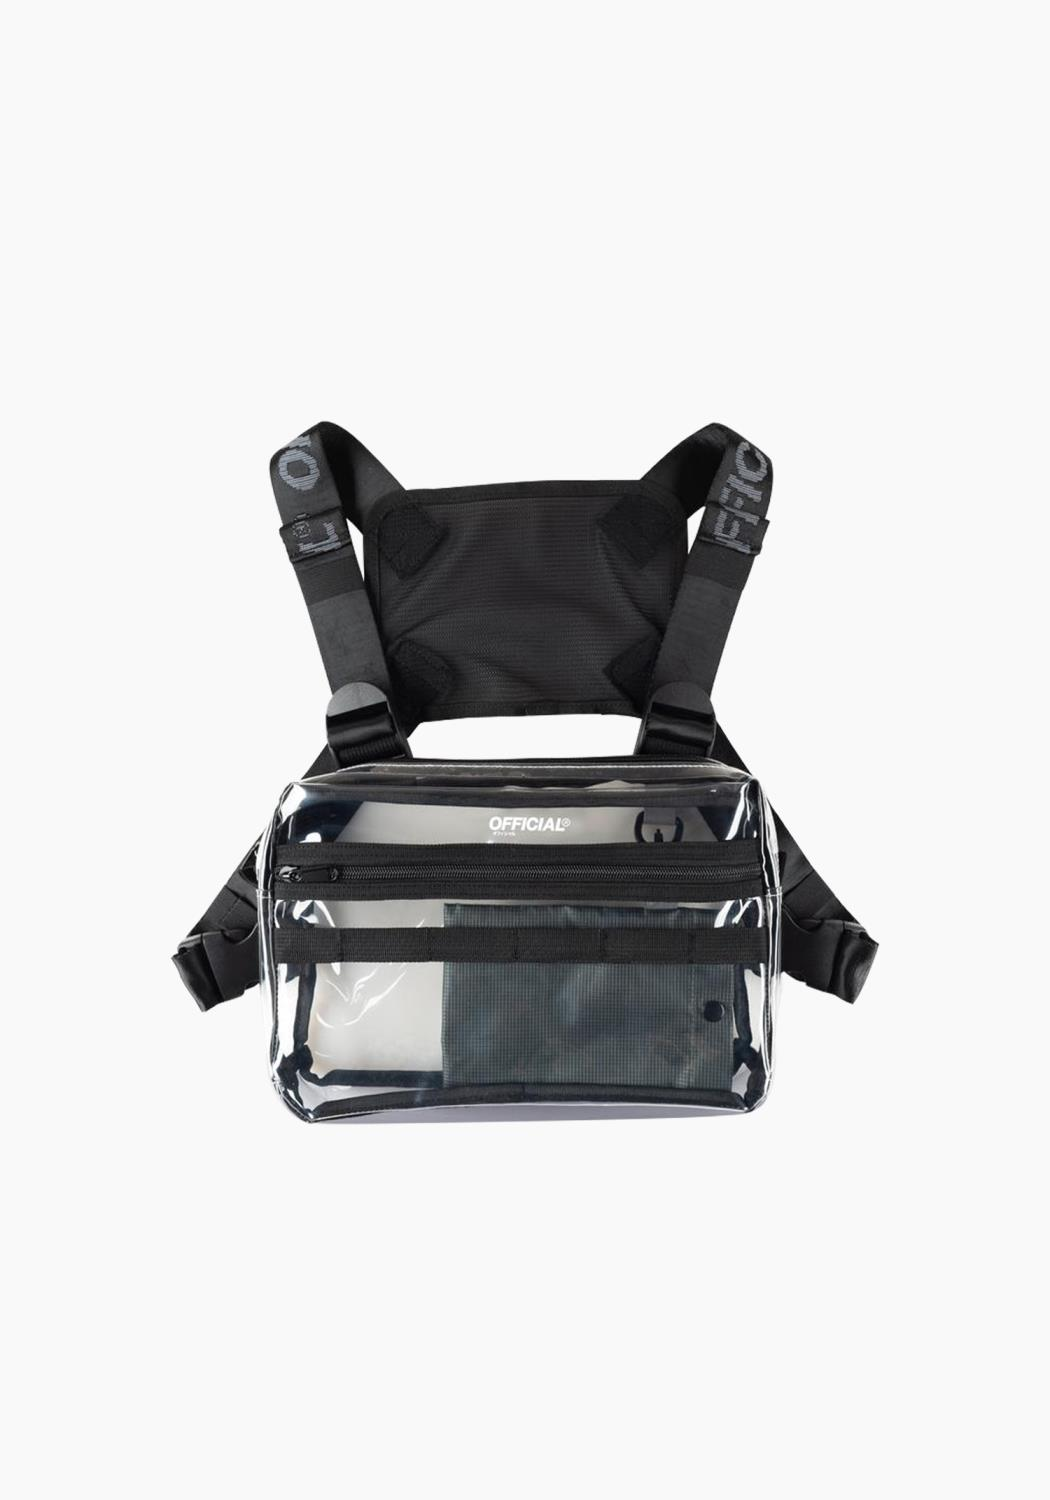 OFFICIAL - Translucent Tri-Strap Utility